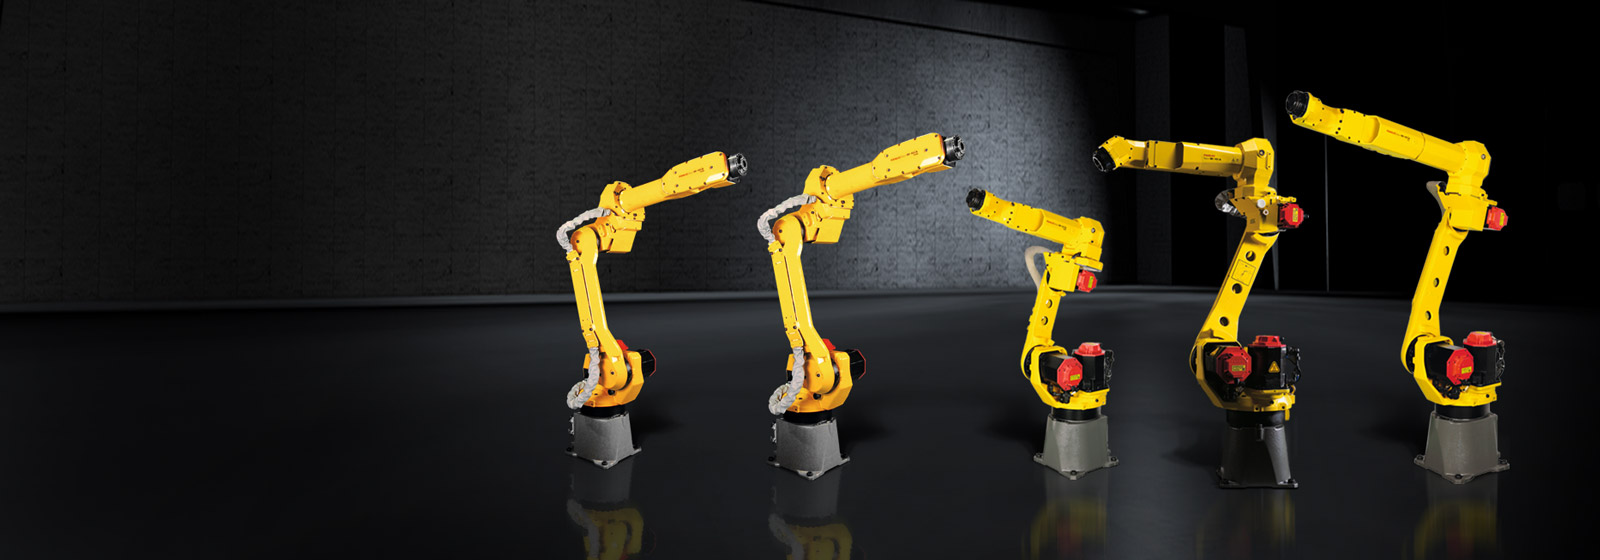 Robot Range of M-10iA series